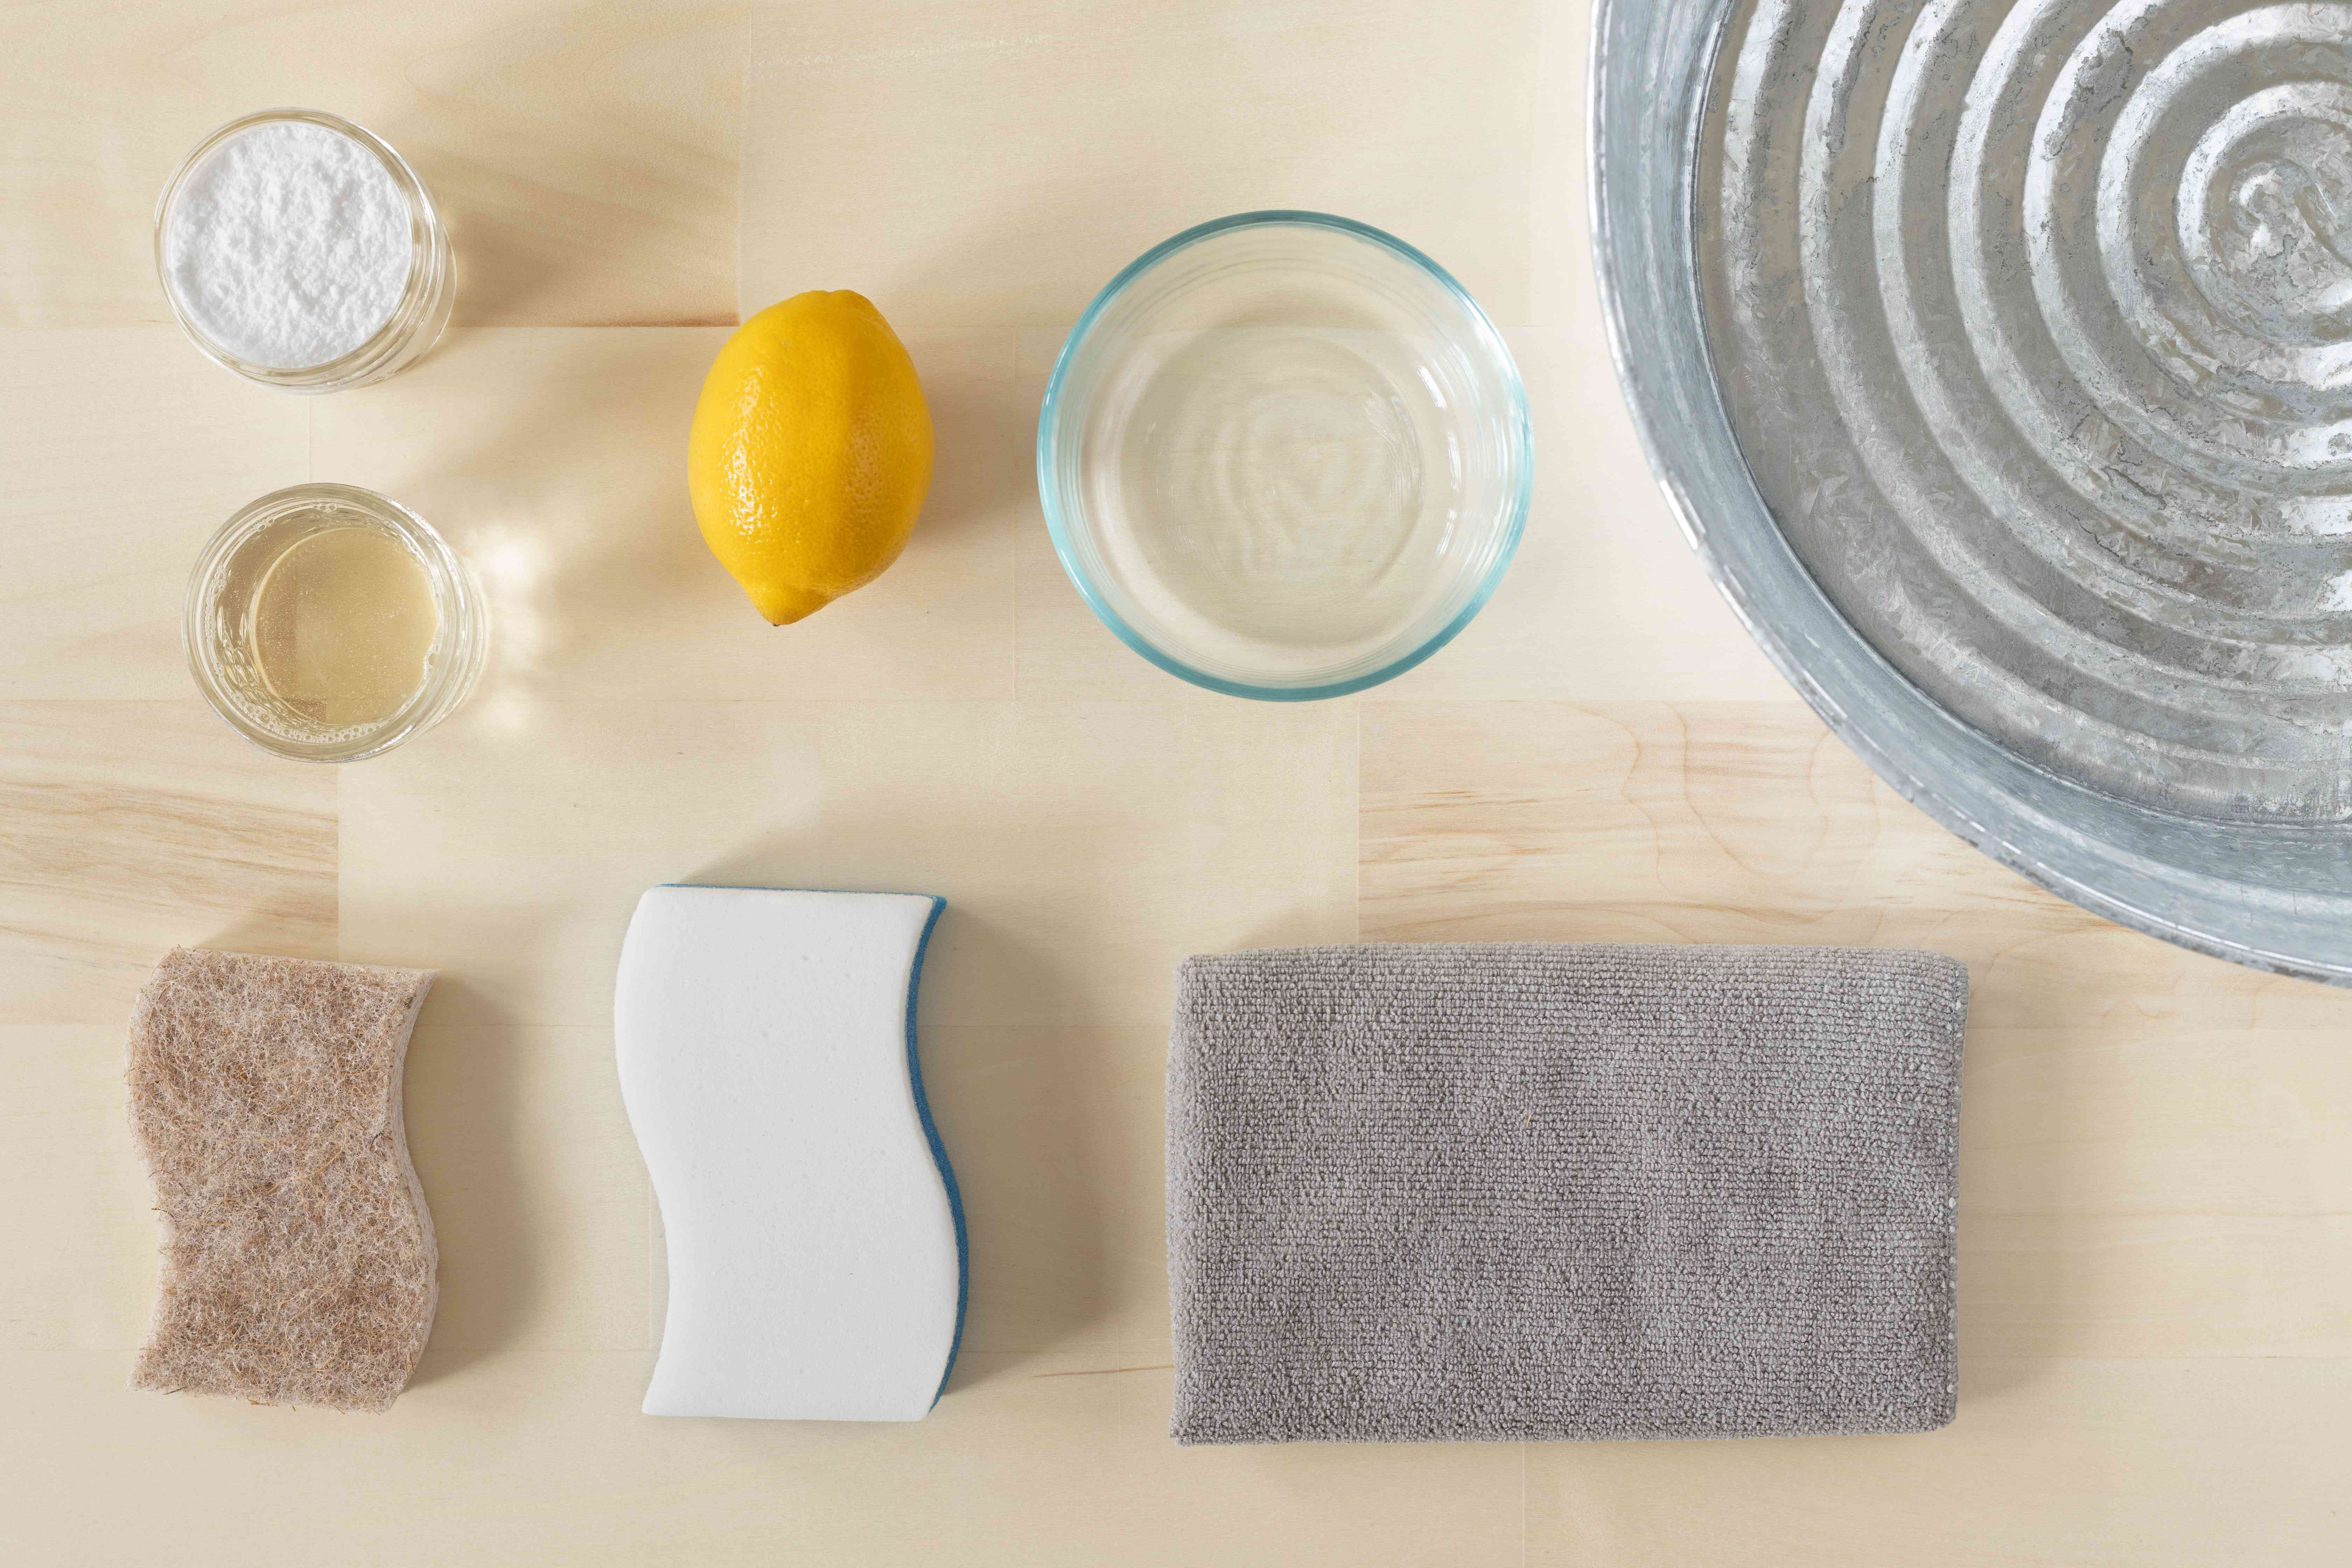 Materials and tools to clean microwave with lemons